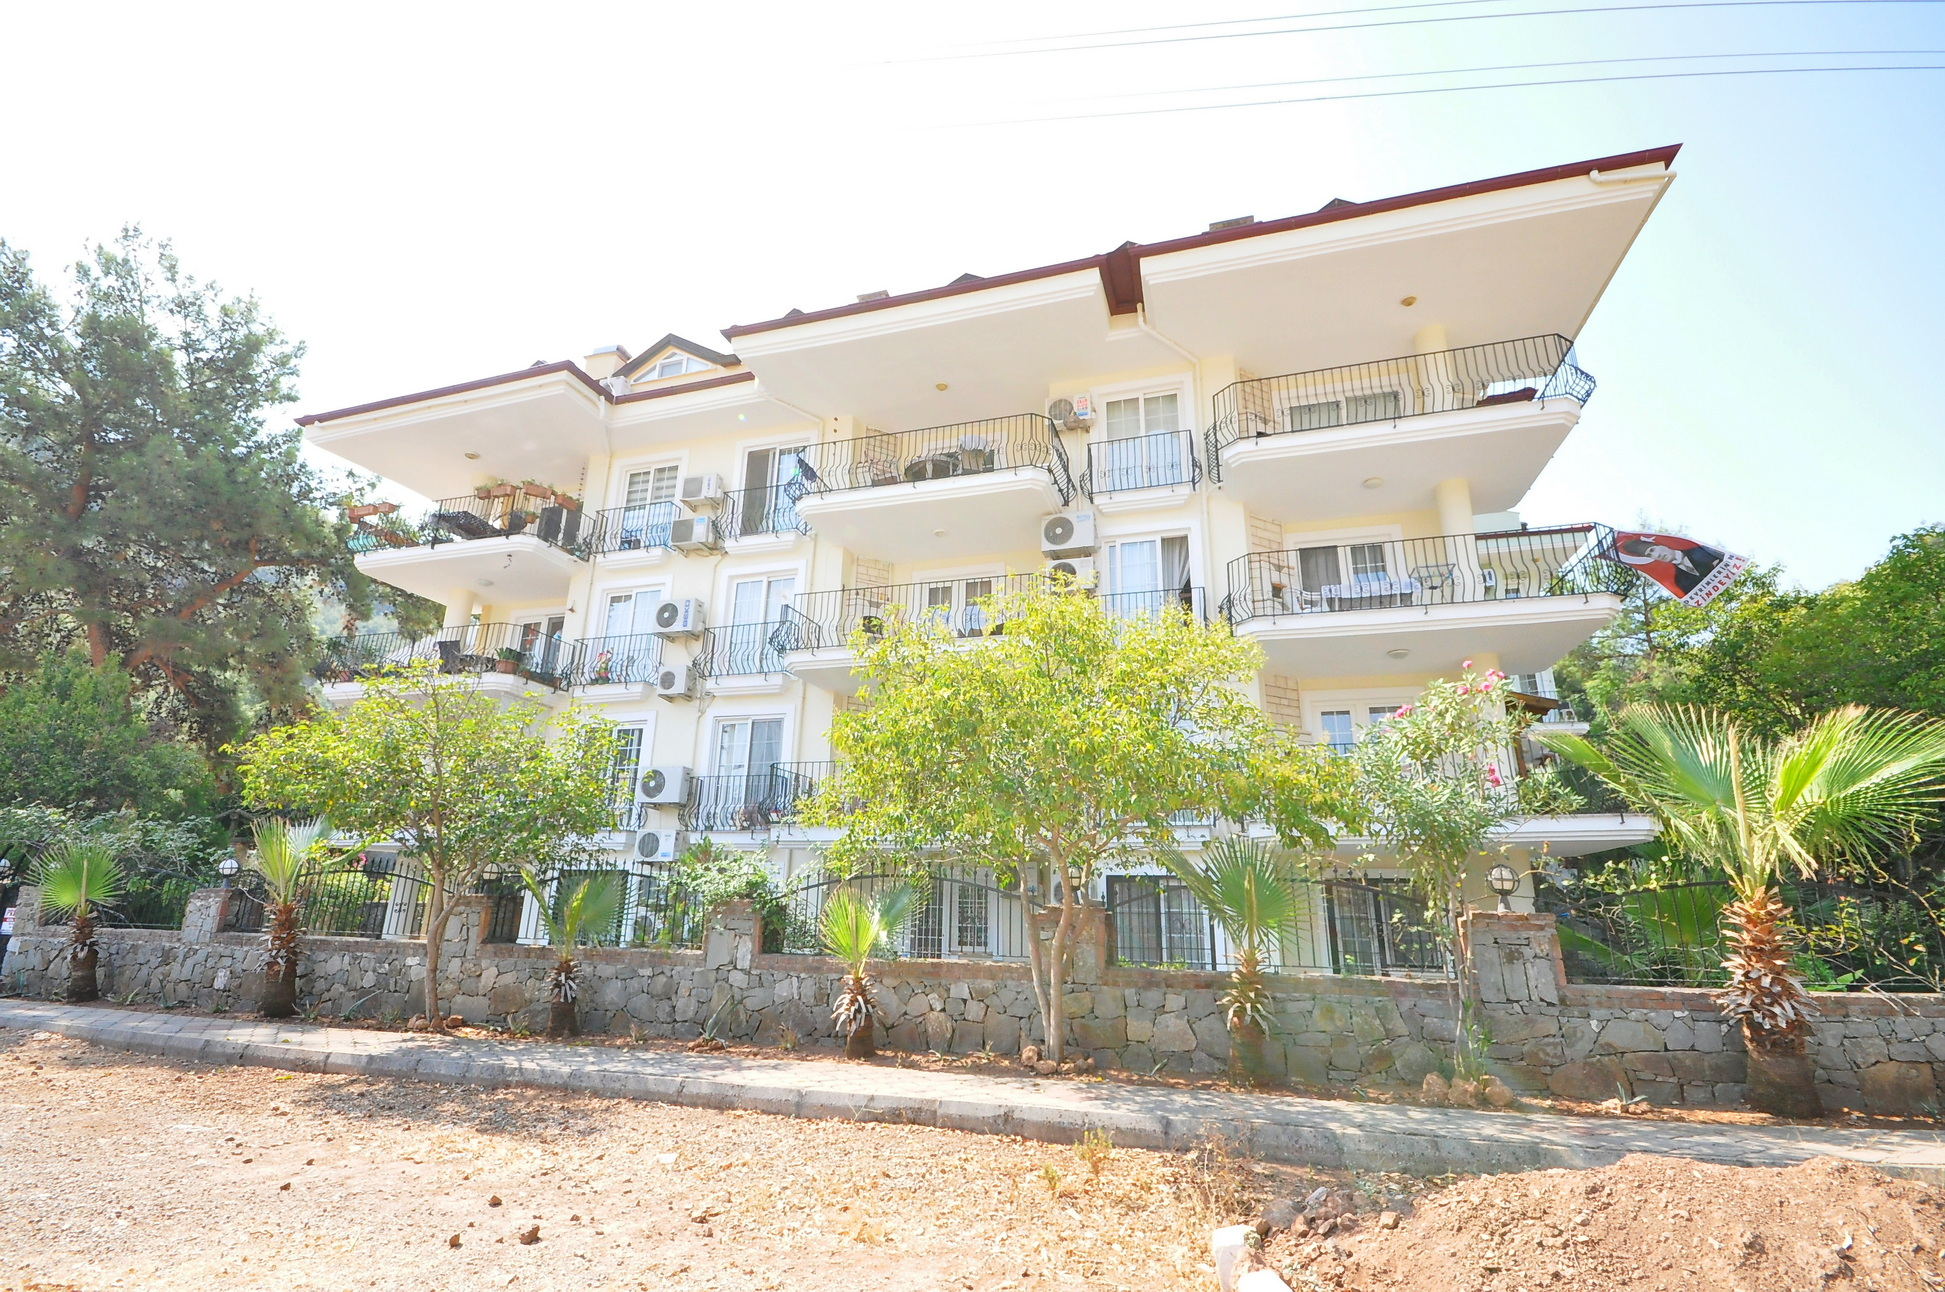 4 Bedroom Duplex Apartment With Swimming Pool